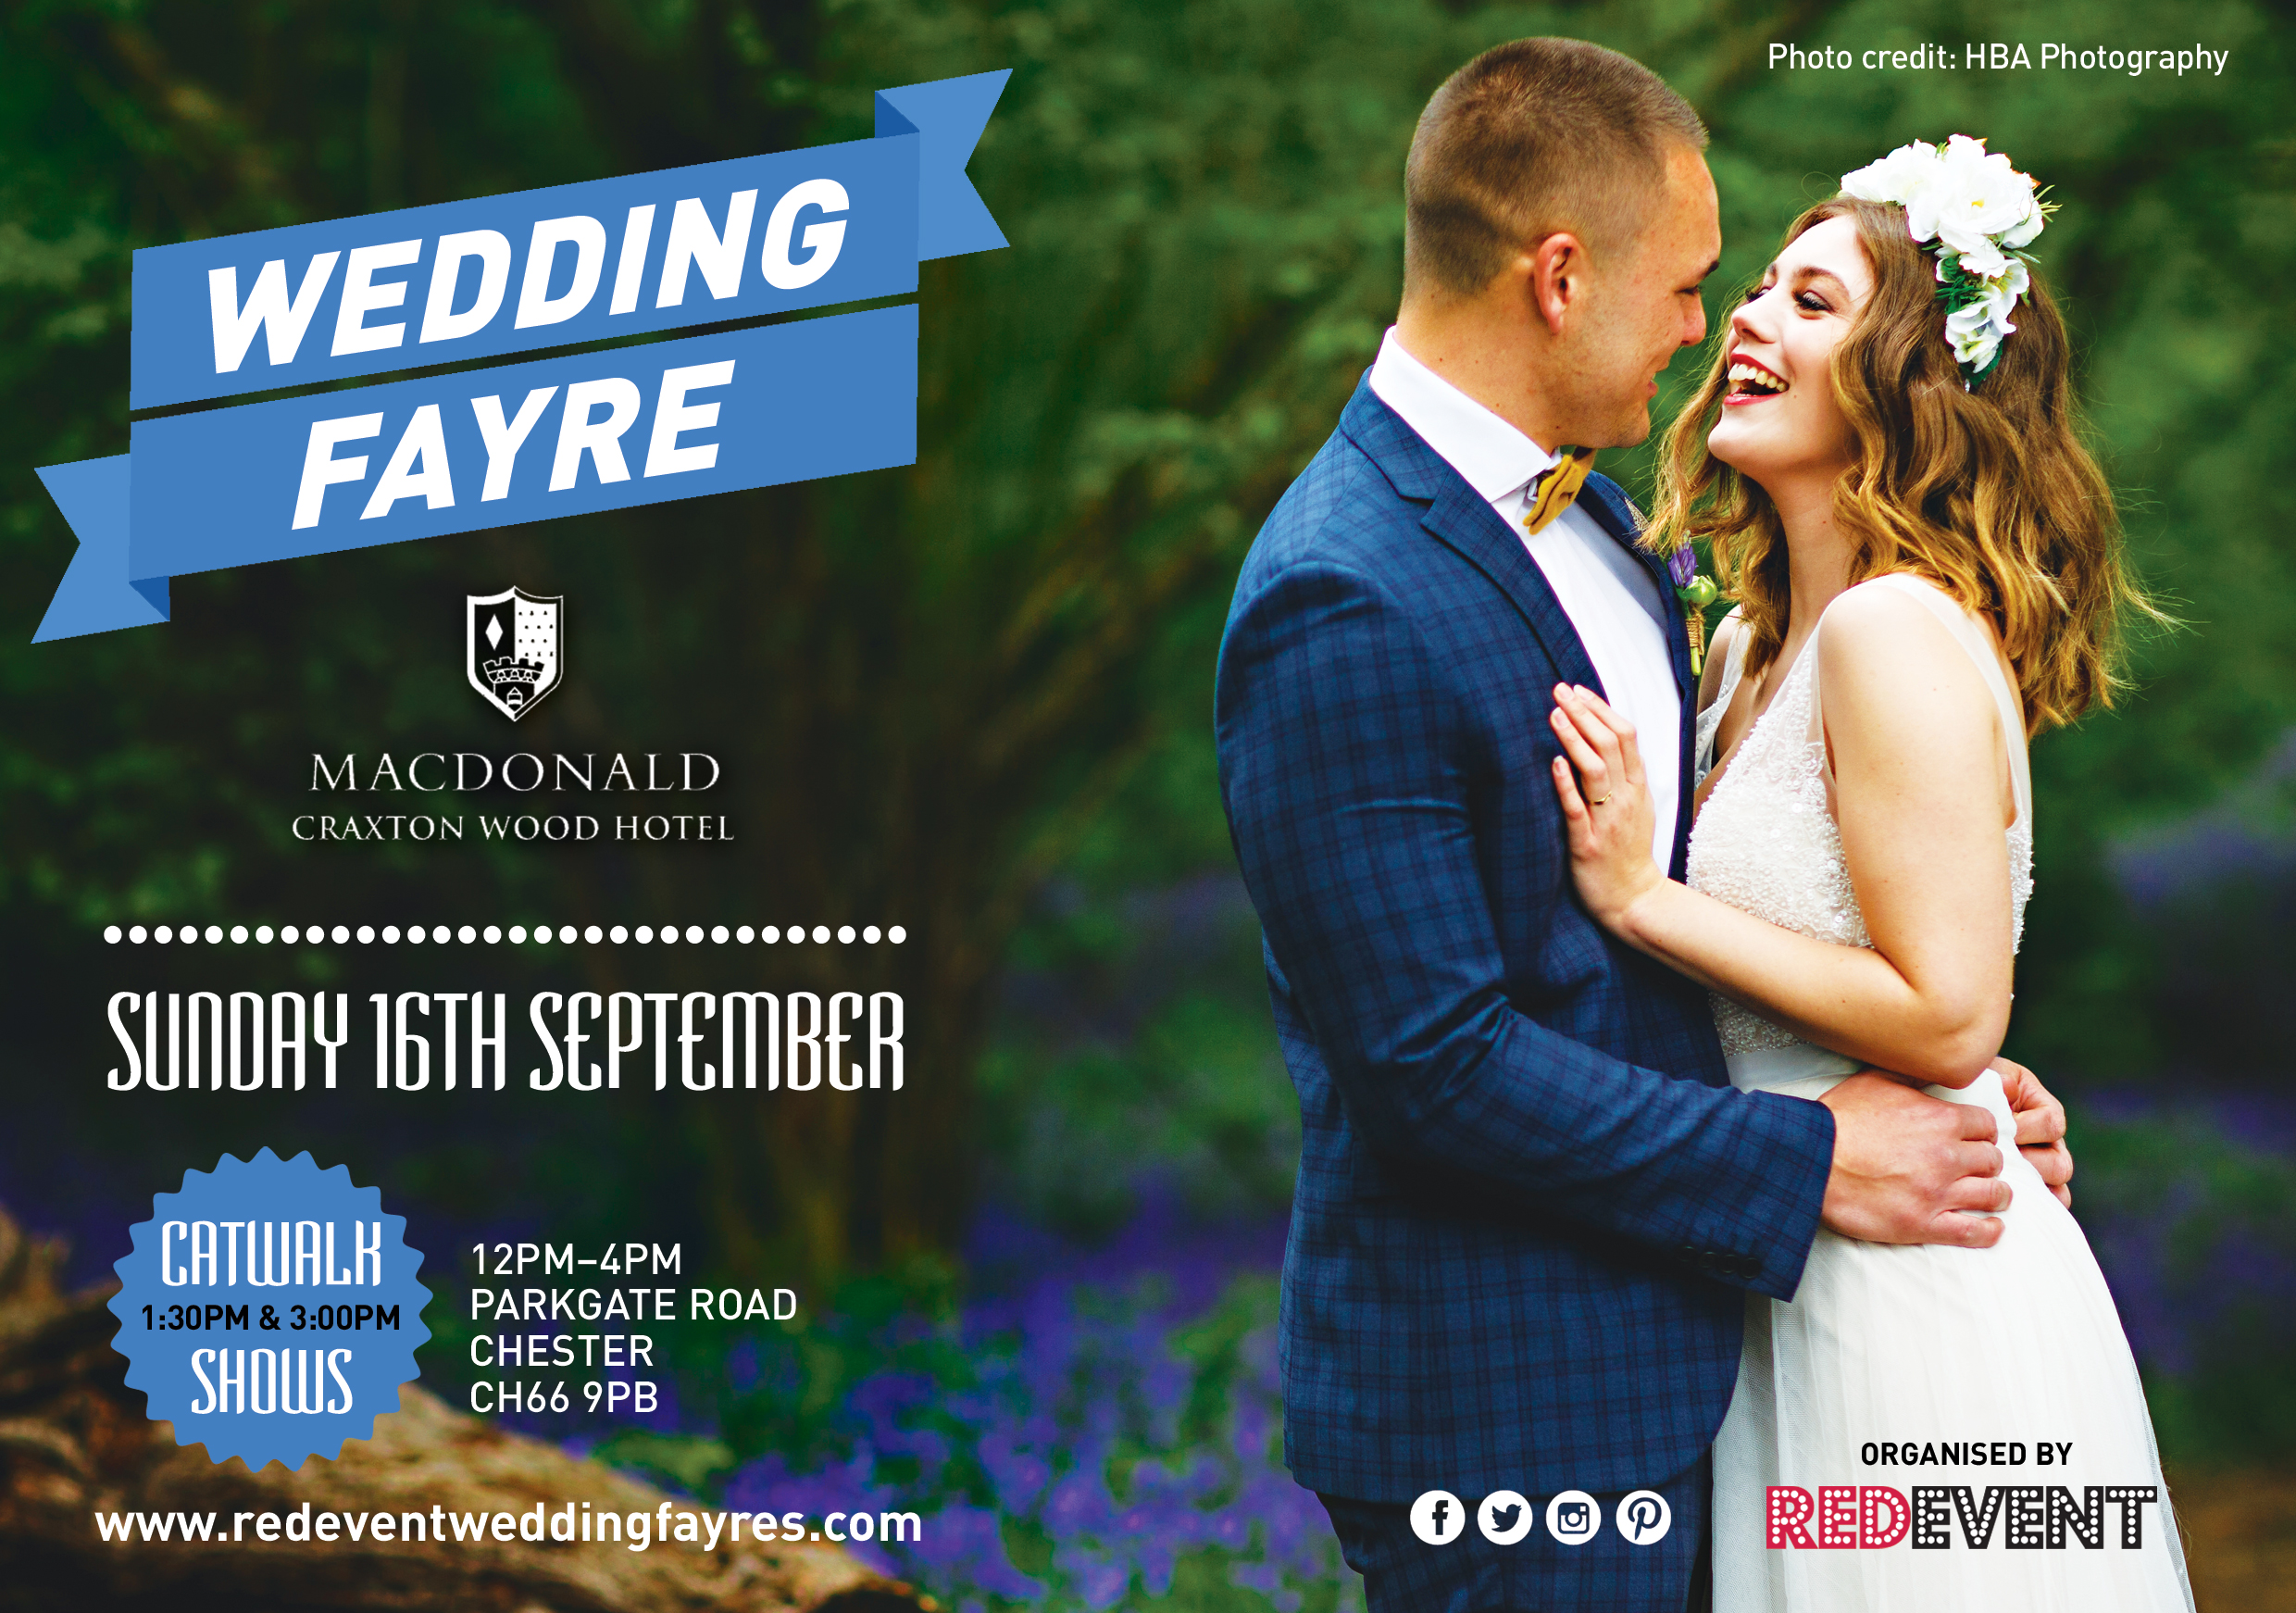 Macdonald Craxton Wood Wedding Fayre Chester, Cheshire Wedding Fair, Wirral, Merseyside, Wedding Venue Show www.redeventweddingfayres.com.jpg